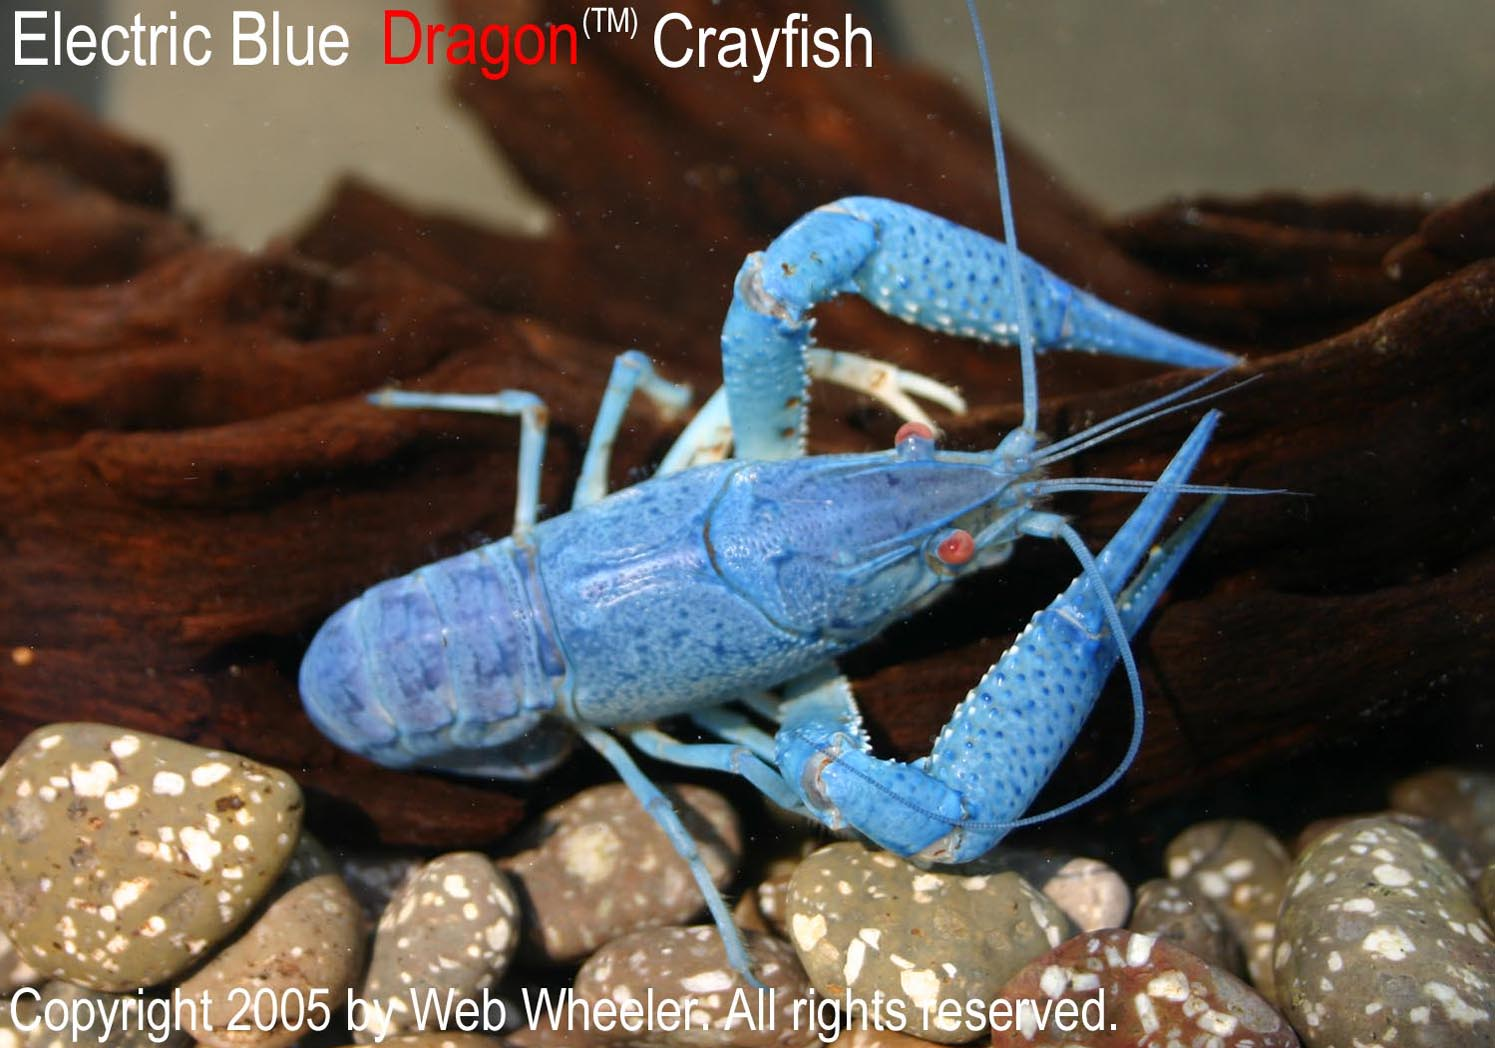 Electric Blue Dragon Crayfish